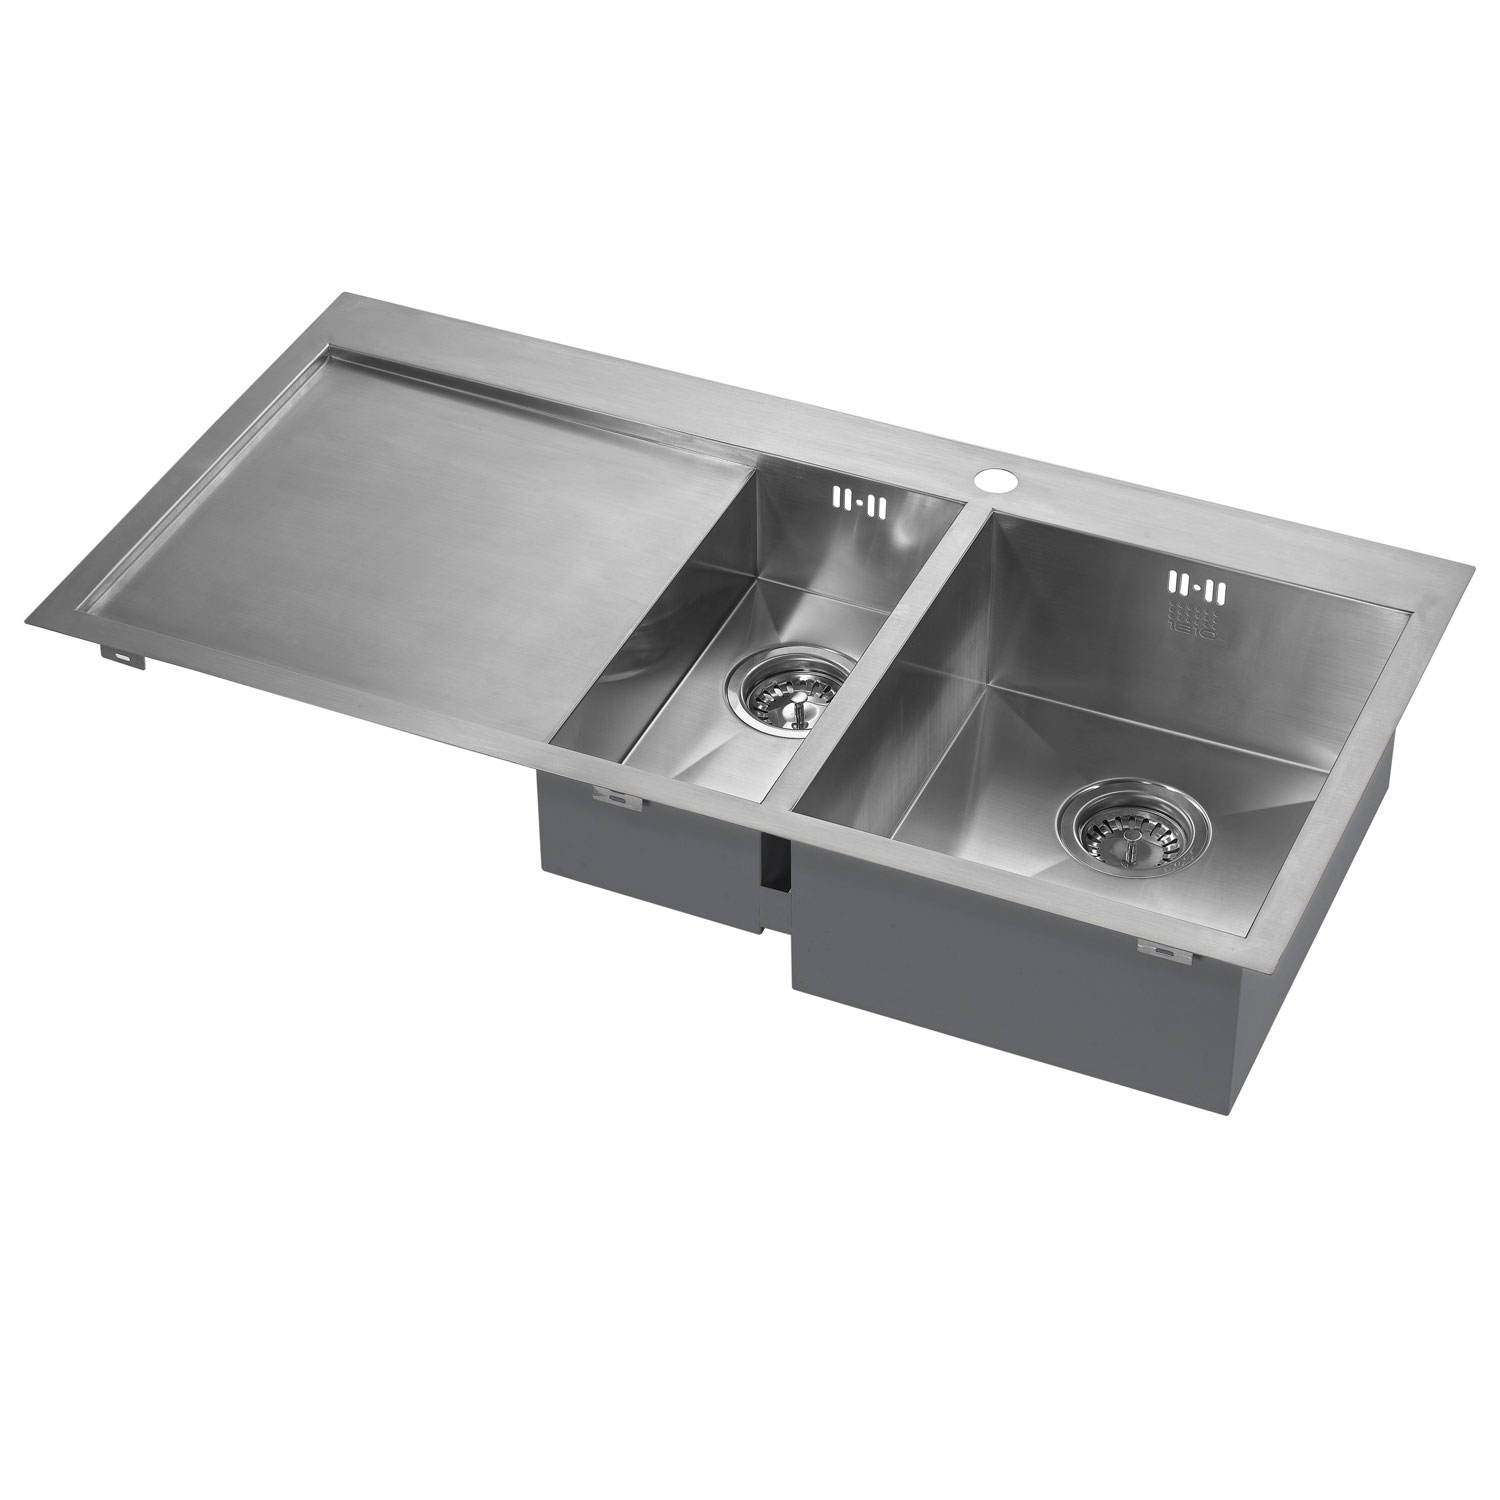 The 1810 Company Zenduo 6 I-F 1.5 Bowl Kitchen Sink - Right Hand-0